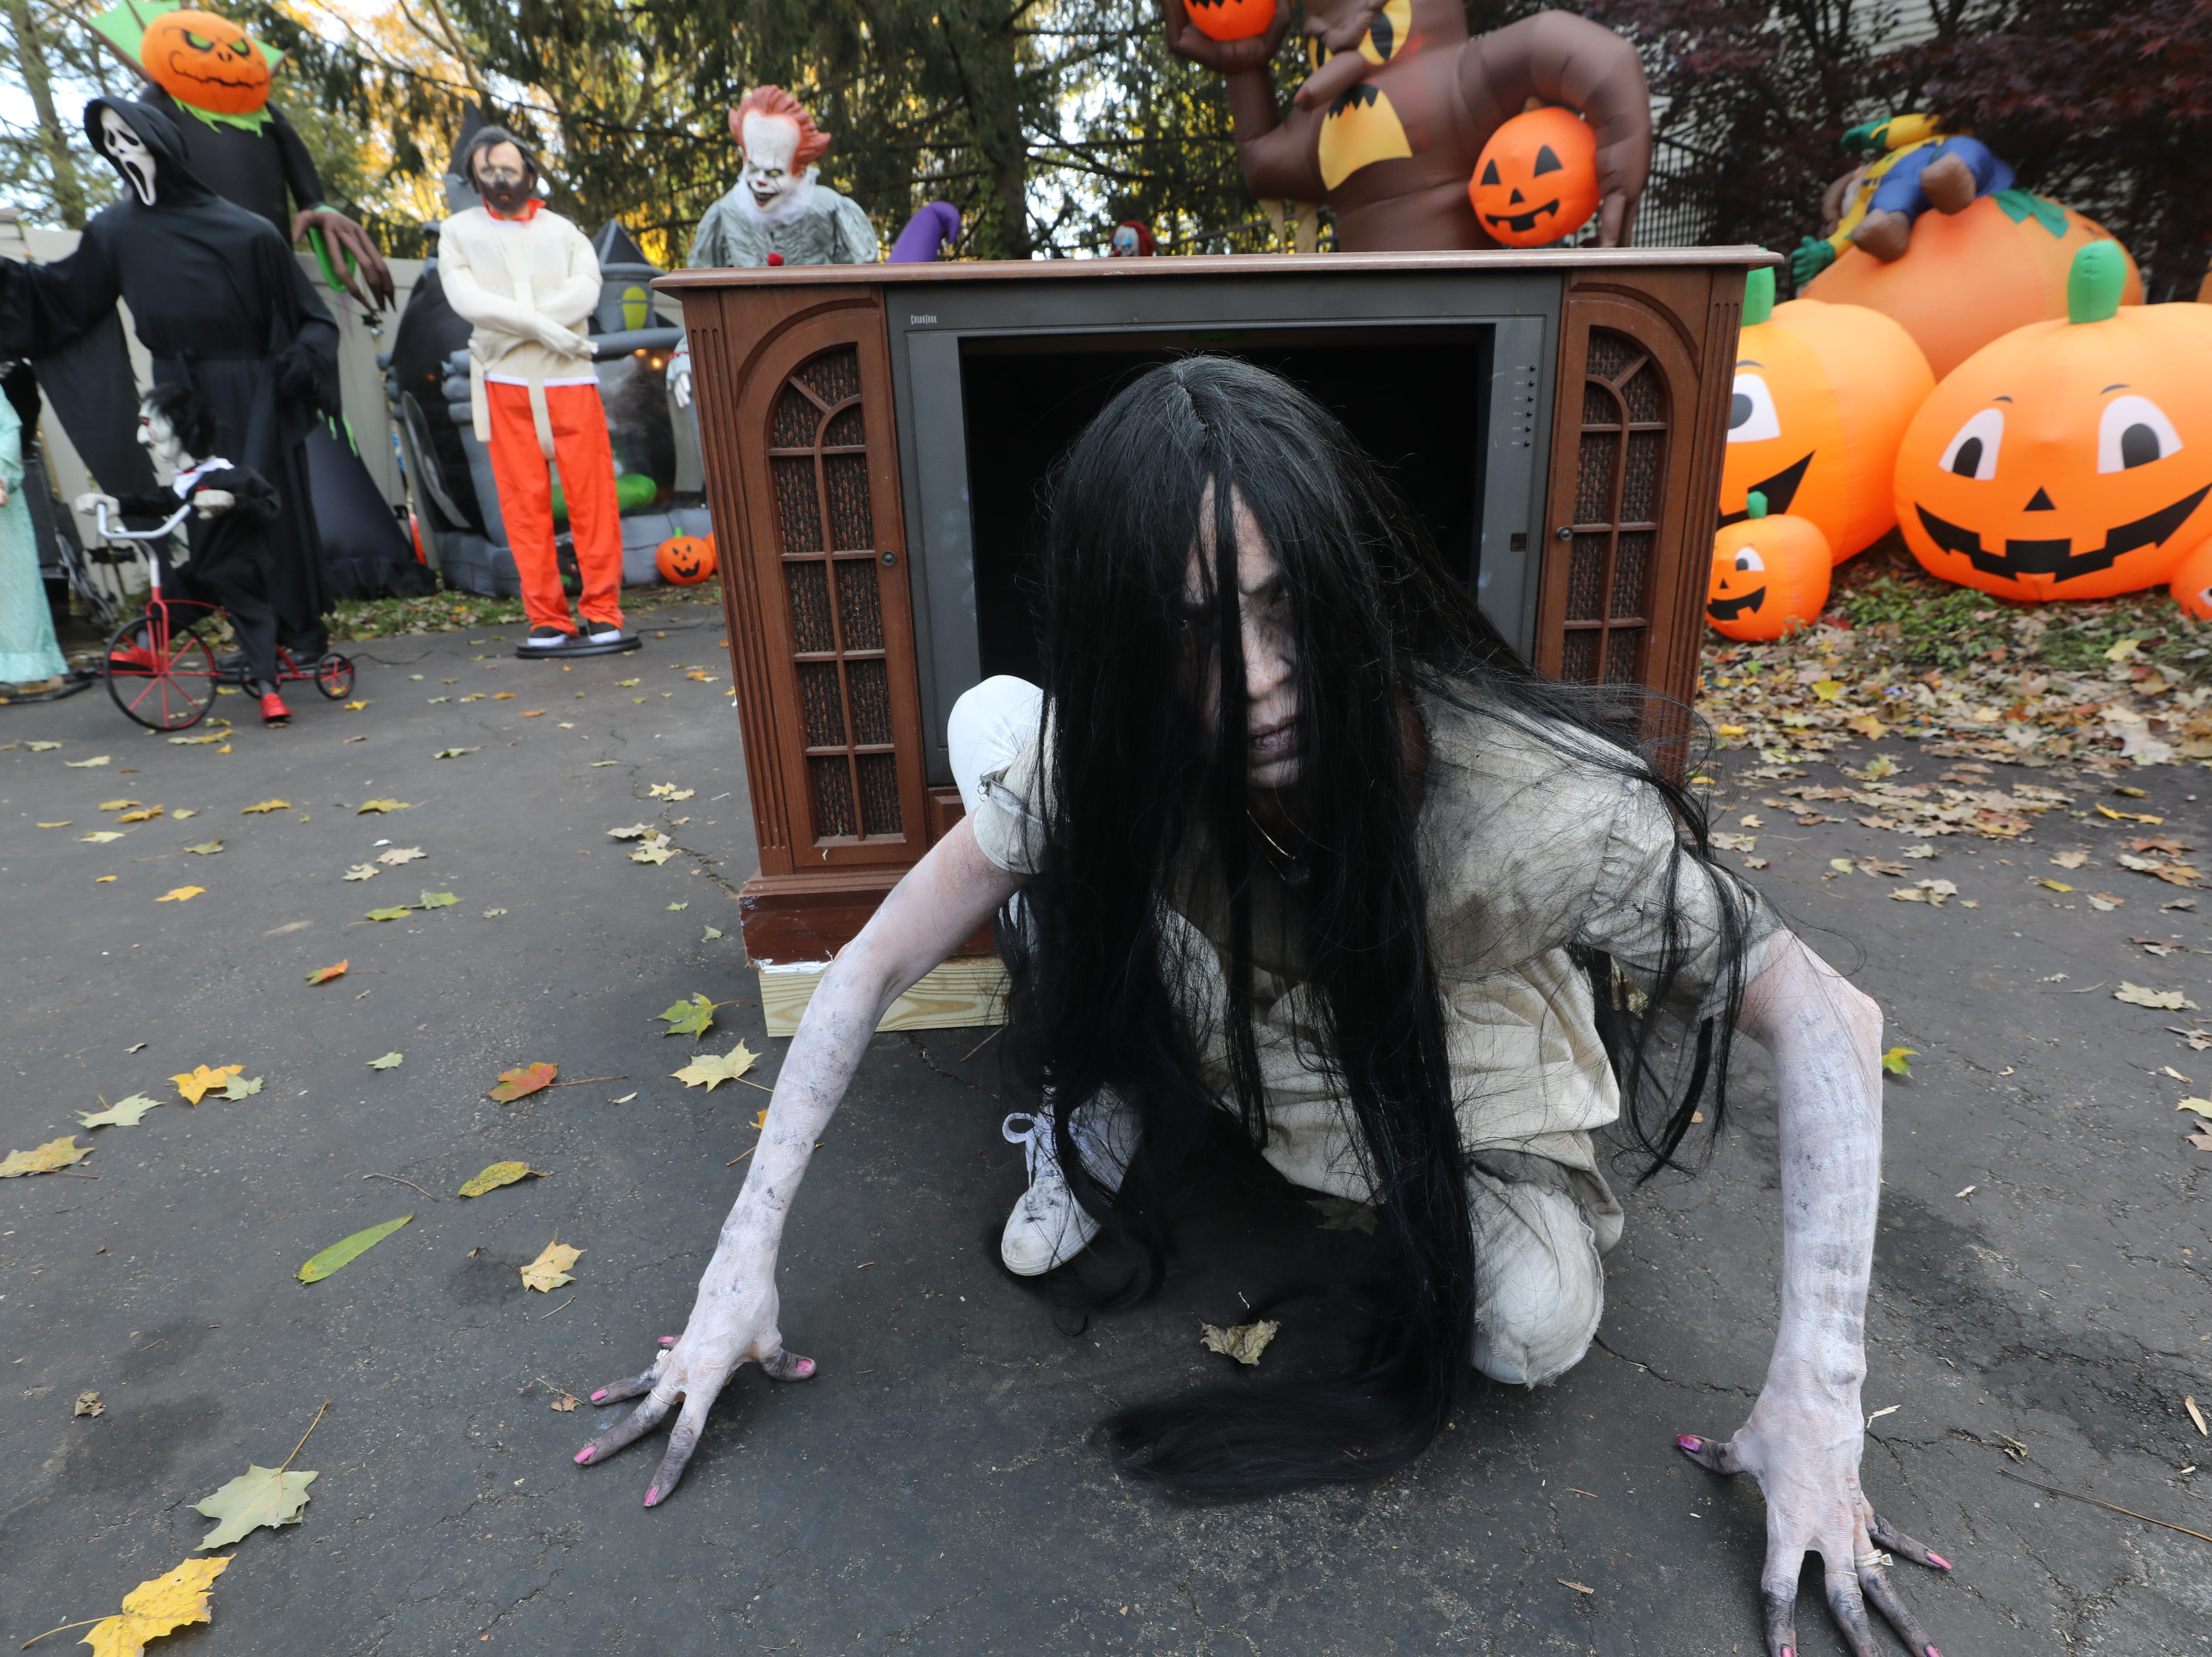 Marisol Cole of Wayne is dressed as the little girl from The Ring as she prepares to climb out of this television set. Gina and Rich Martorano start to put this huge Halloween display, on Fairfield Rd., together in August and will be dismantling it tomorrow to make room for their Christmas display. Parents and kids from the area came to see and be scared.